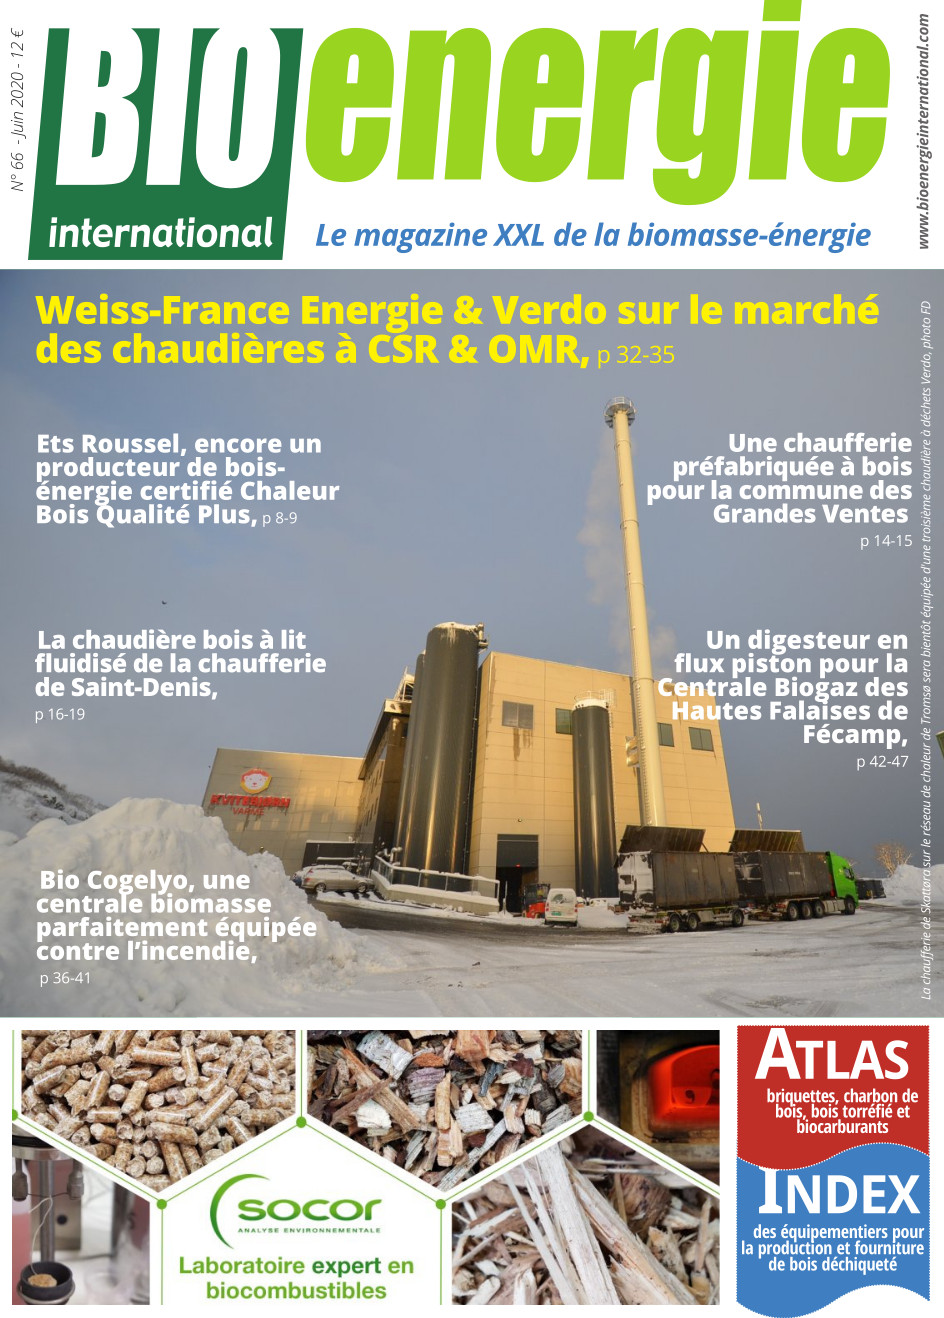 Bioénergie International n°66 – juin 2020